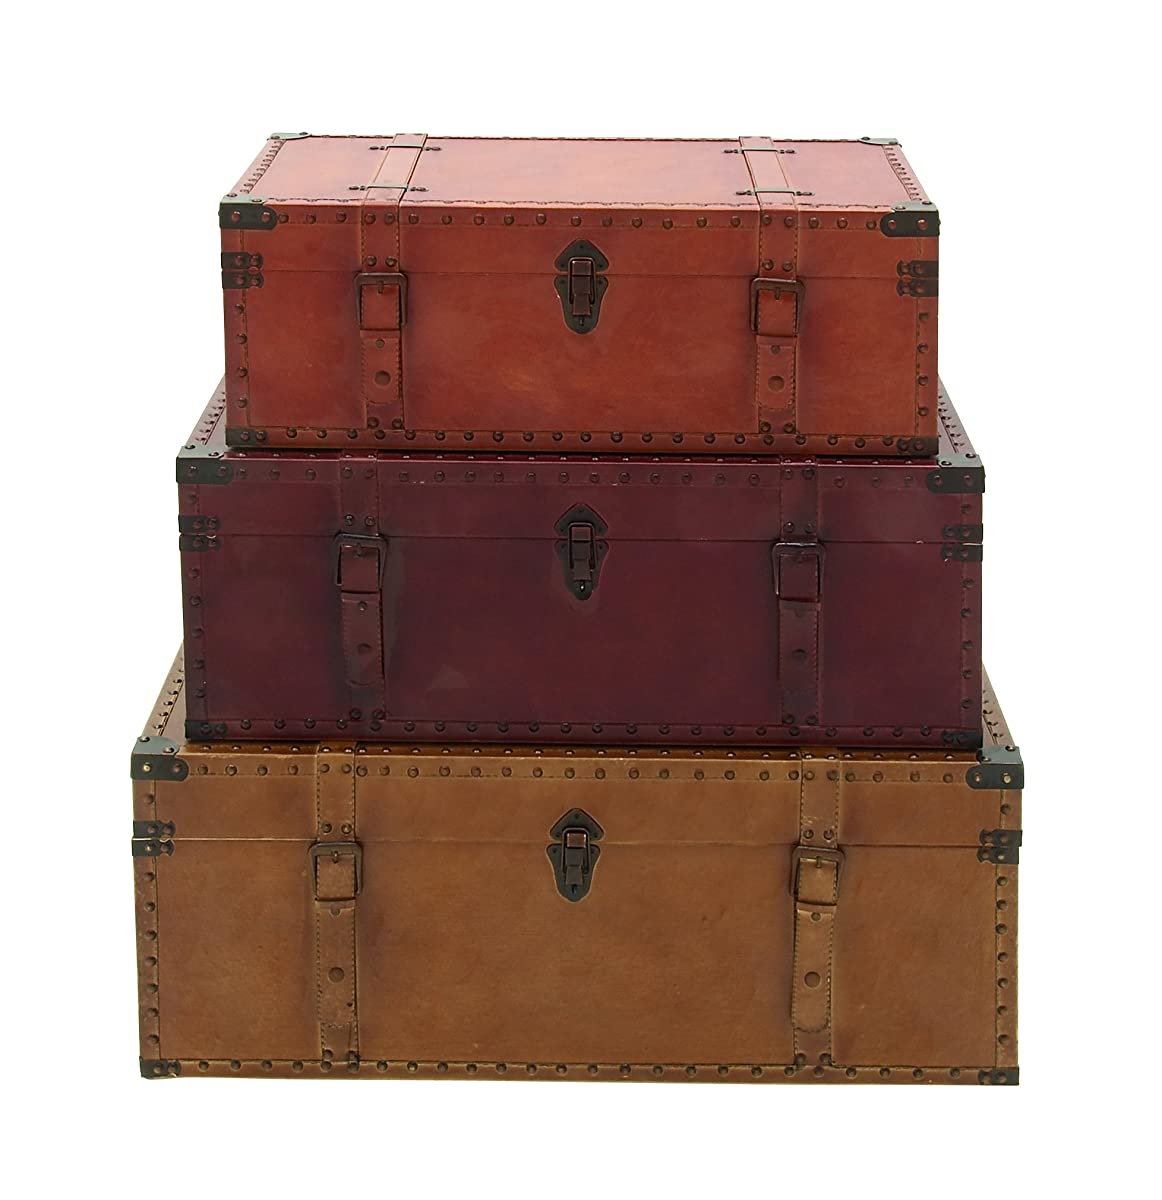 Deco 79 56670 Large Brown, Burgundy, Tan Leather & Wood Storage Trunks with Studs & Buckles | Set of 3